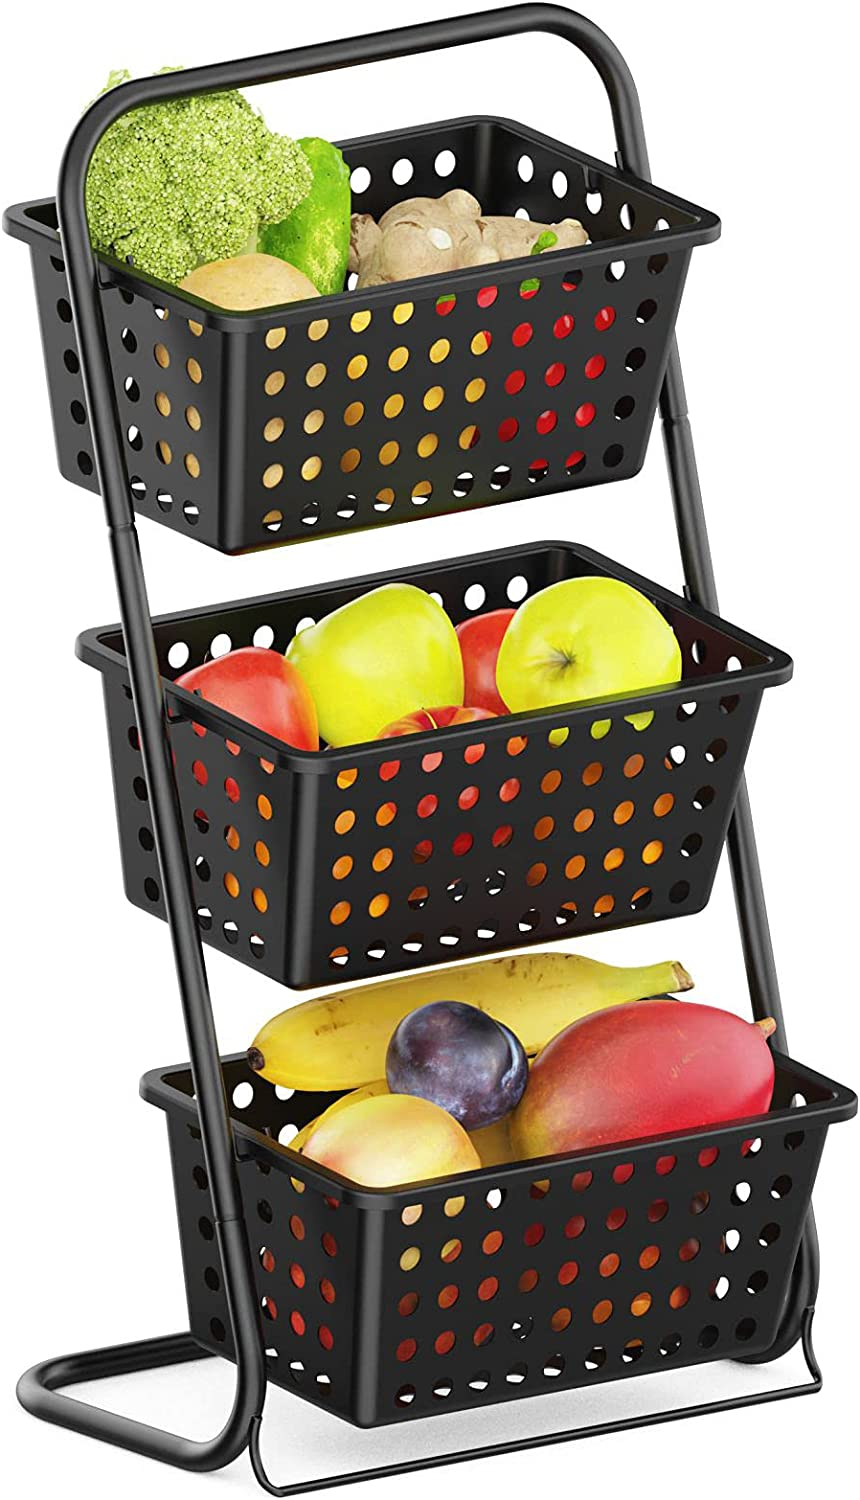 iSPECLE 3 Tier Standing Fruit  Hanging  Basket $19.79  Coupon